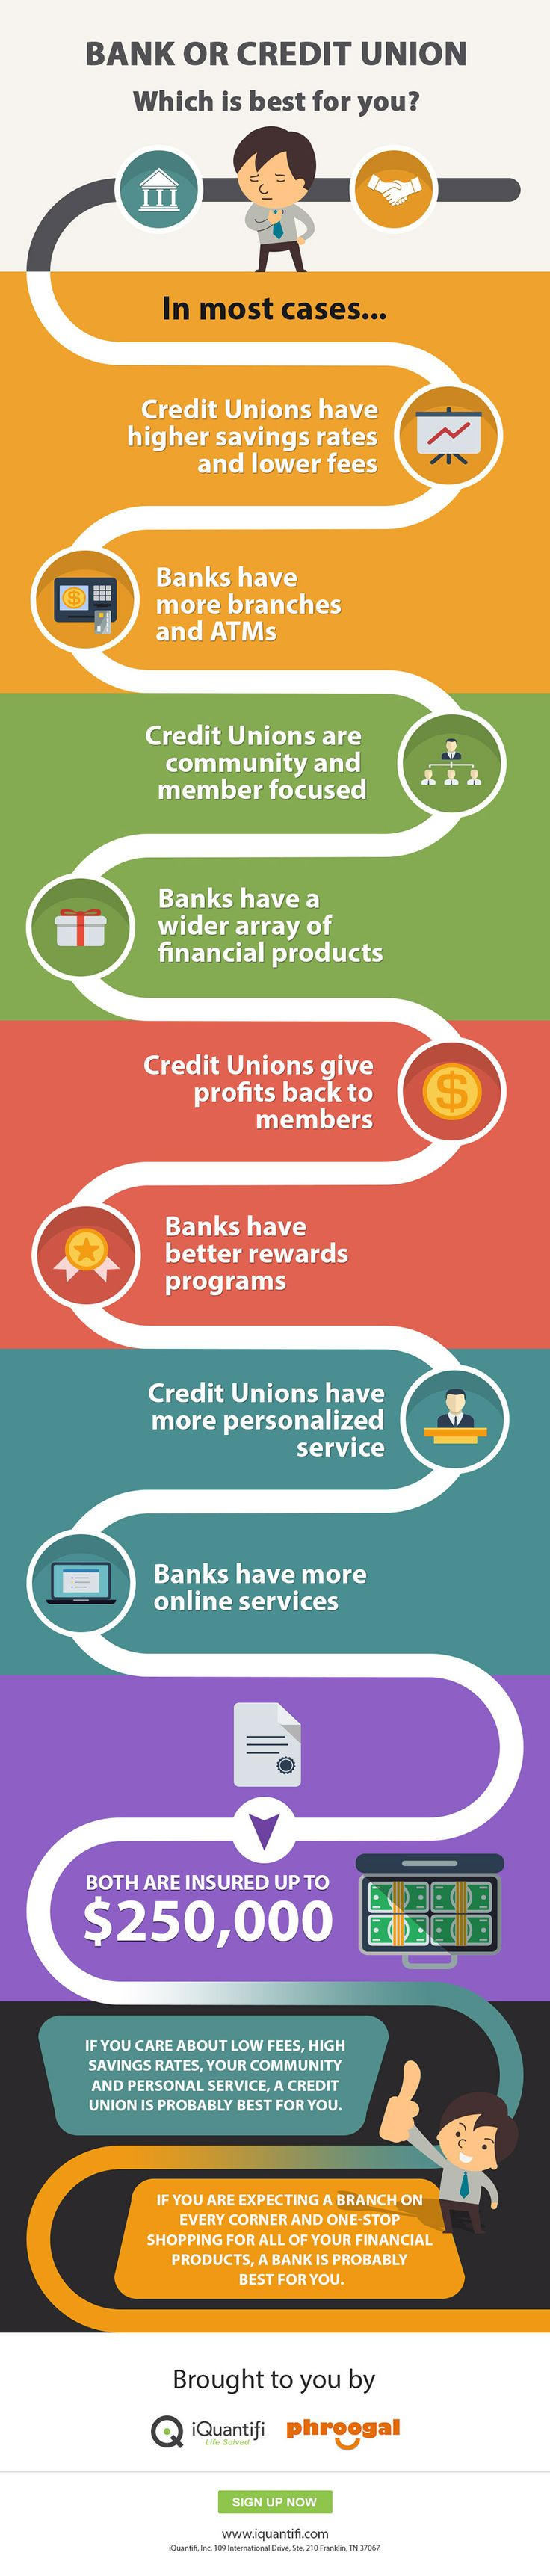 http://www.oaktreebiz.com/products-services/all-products-services Bank or Credit Union?